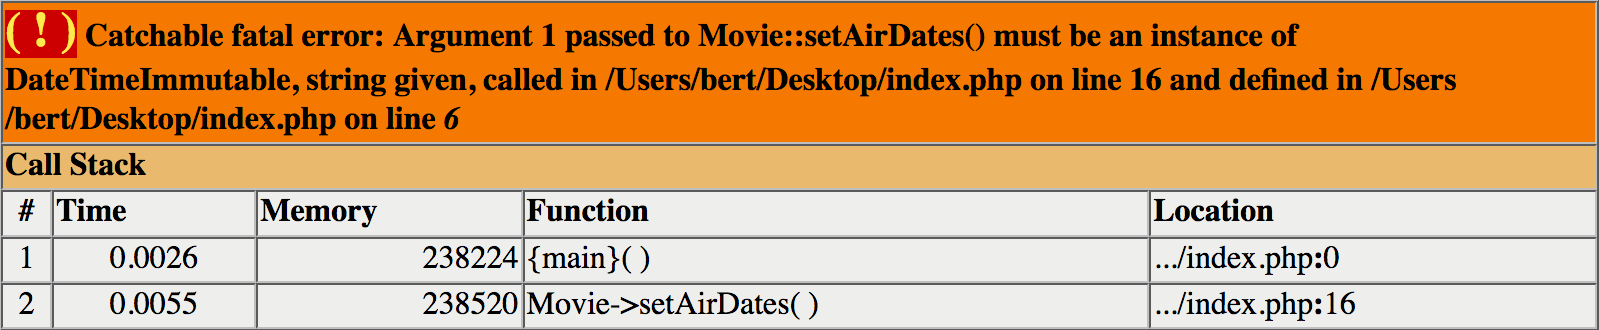 Catchable fatal error: Argument 1 passed to Movie::setAirDates() must be an instance of DateTimeImmutable, string given.